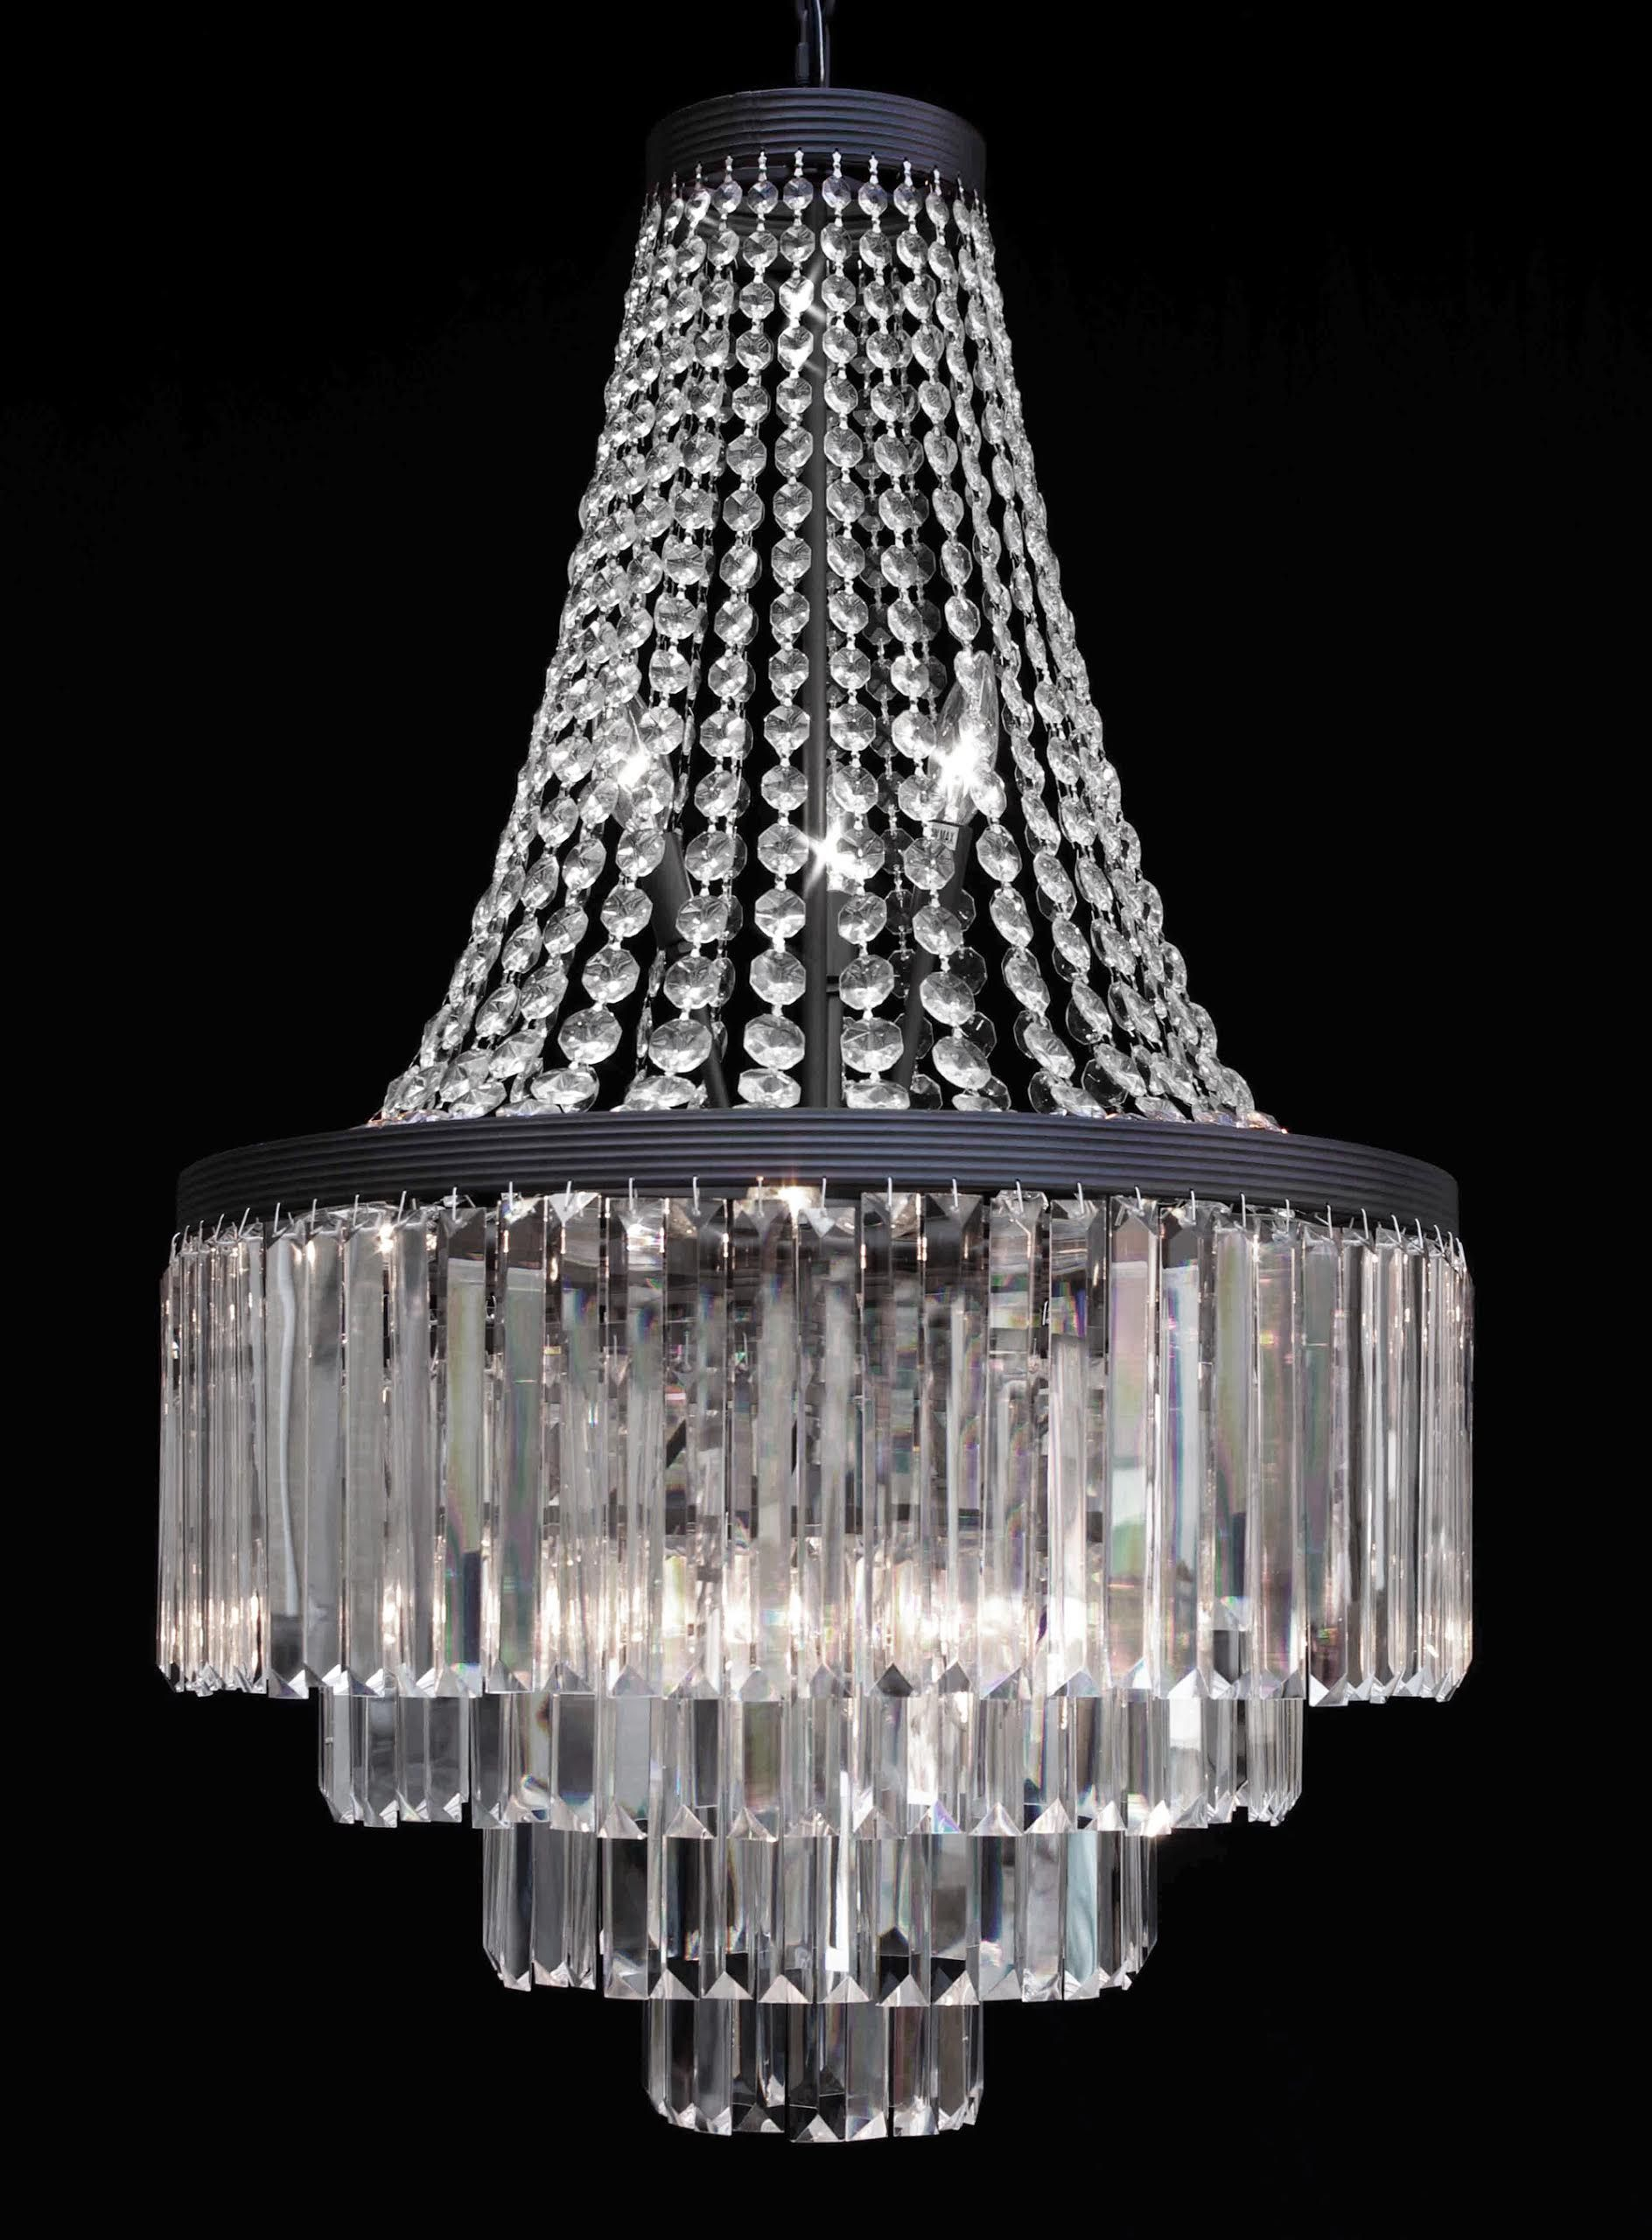 G7 2183 11 Gallery Chandeliers Retro Odeon Crystal Glass Fringe 3